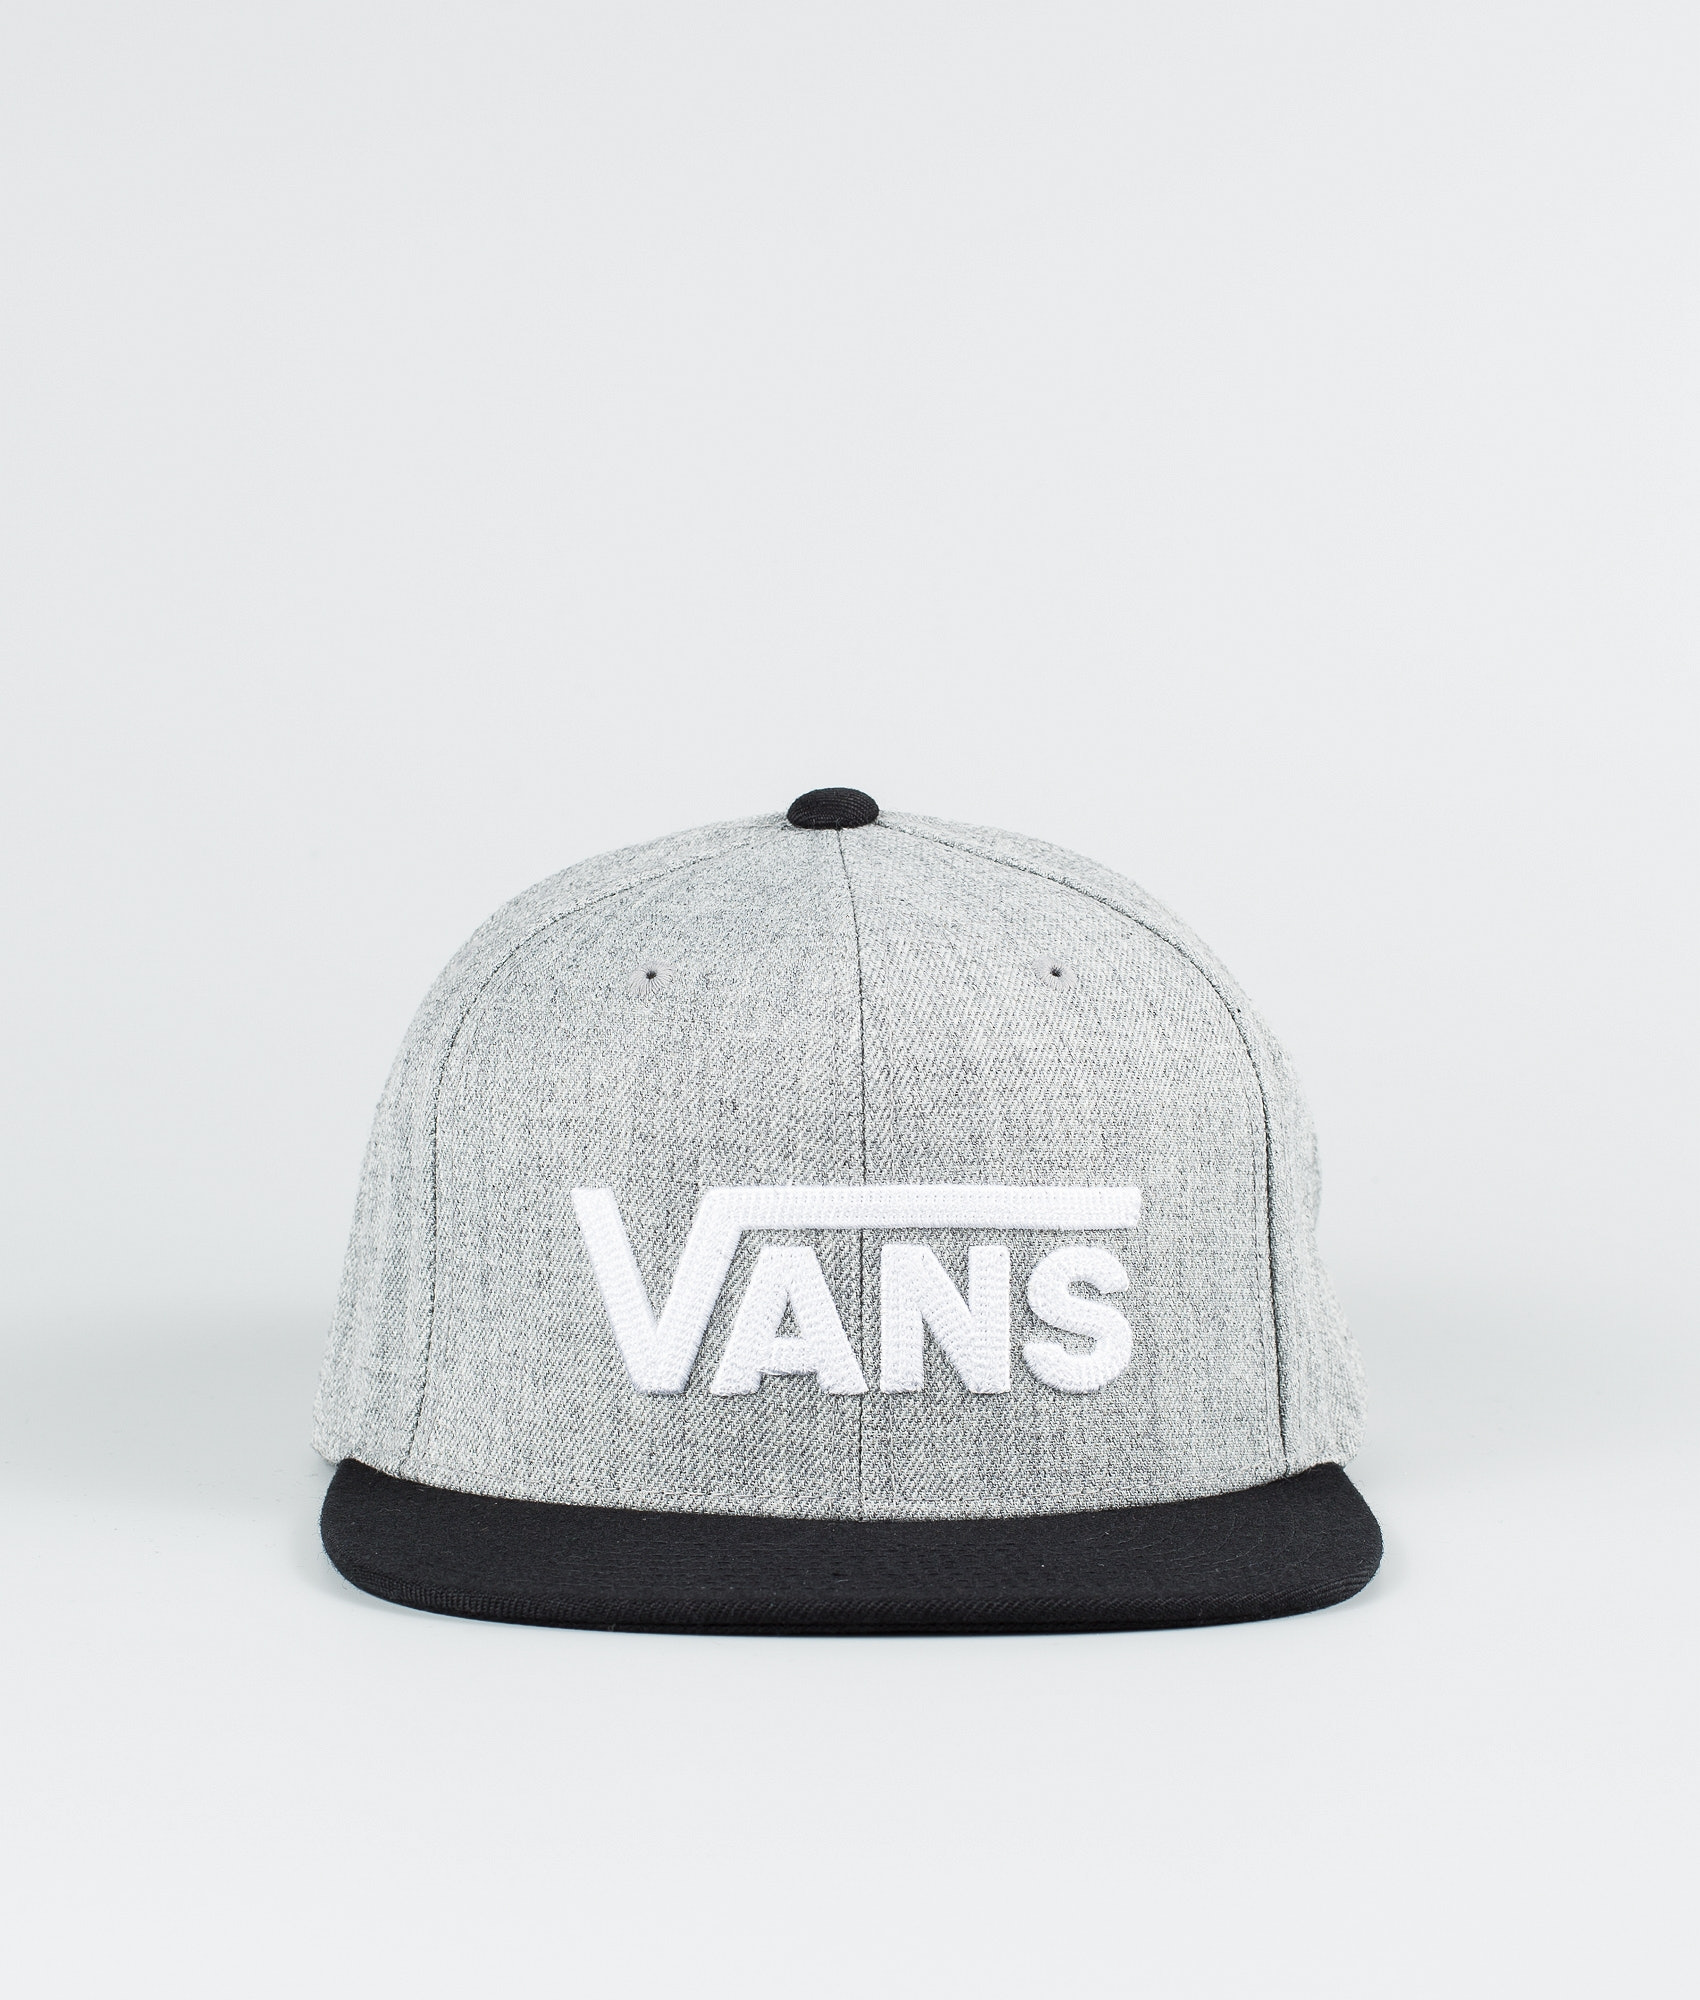 01af1bd1789a7 Vans Drop V II Snapback Cap Heather Grey Black - Ridestore.com